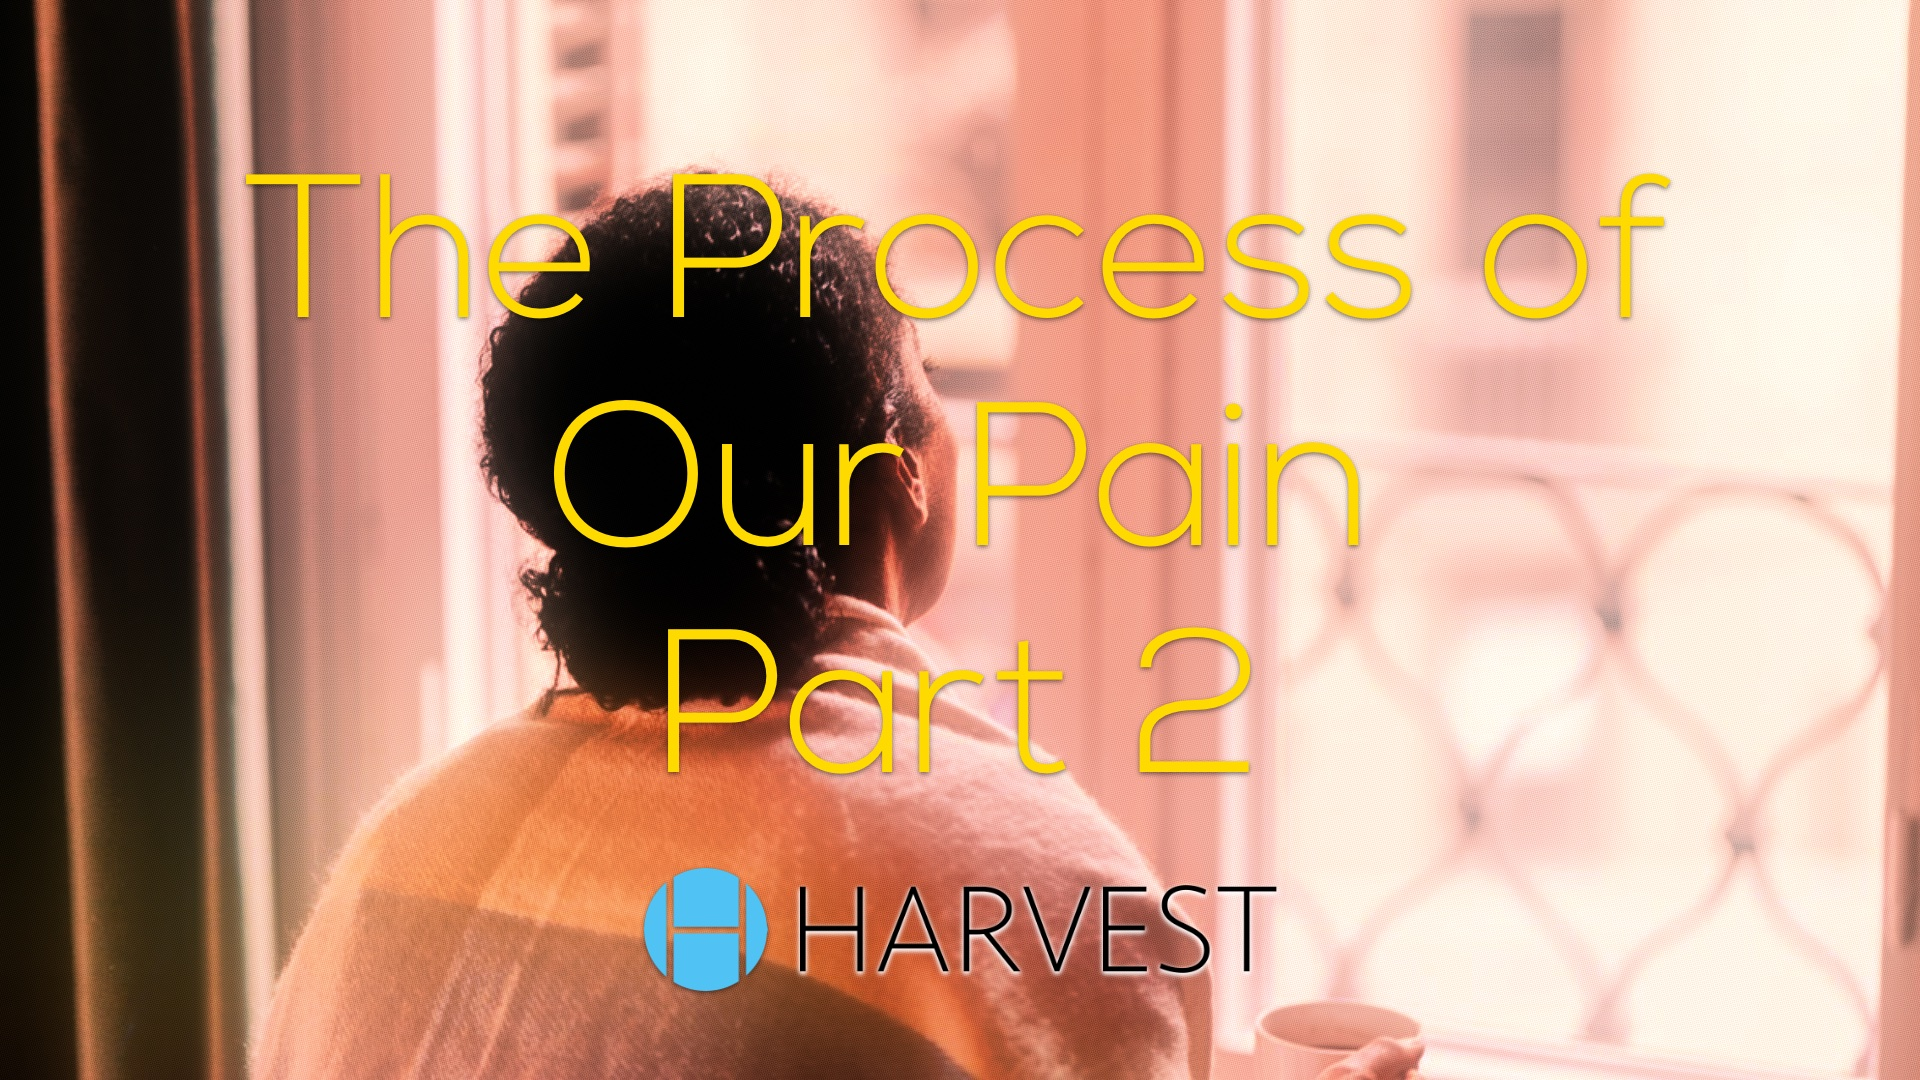 Mother's Day: The Process of Our Pain Part 2